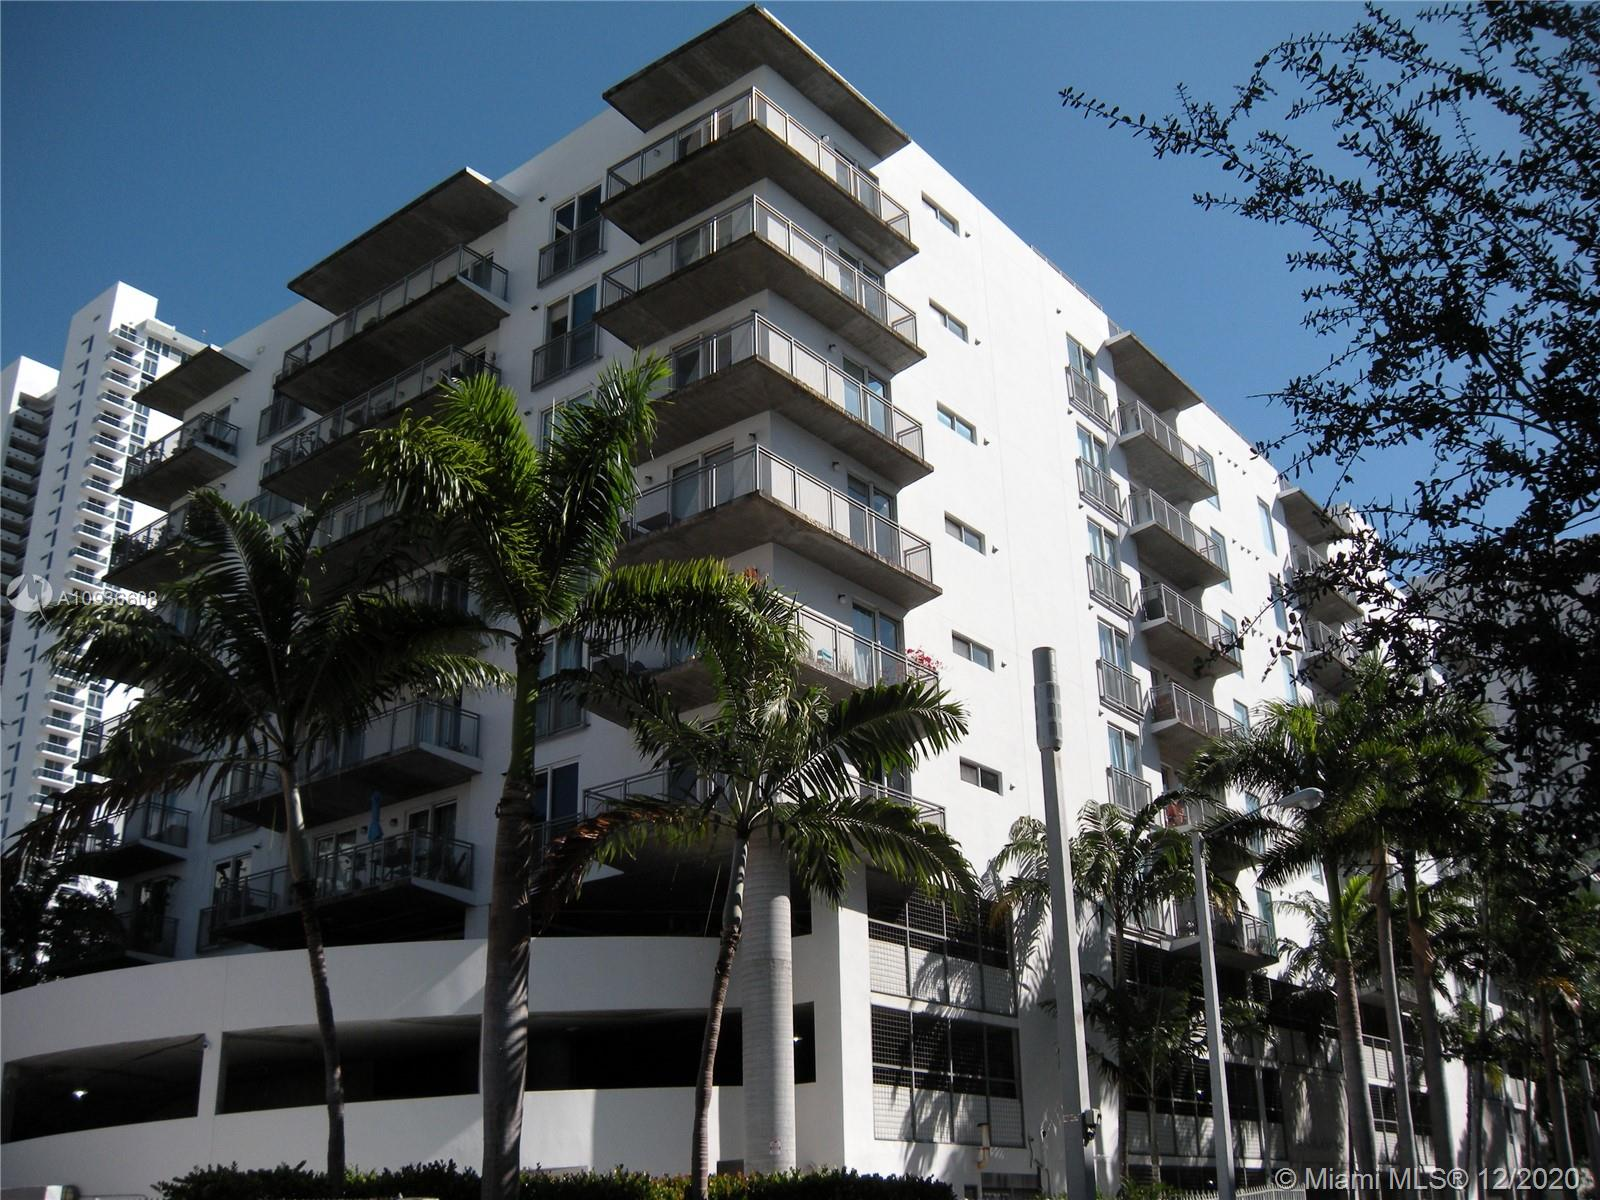 Two parking spaces on this 1/1.5 stunning condo located in Miami's Design And Art District. This condo loft is located in the booming Edgewater area of Miami. Features include concrete floors, 10ft ceilings, large balcony with Bay and City Views, wood kitchen cabinets, stainless steel appliances, washer and dryer in unit, open living and bedroom spaces, floor to ceiling hurricane proof glass doors, newer paint with decorator colors, walk-in closet and more. Unique 9 story building with pool, gym, security cameras and electronic gates. Free water and trash. One year lease, mandatory association approval.